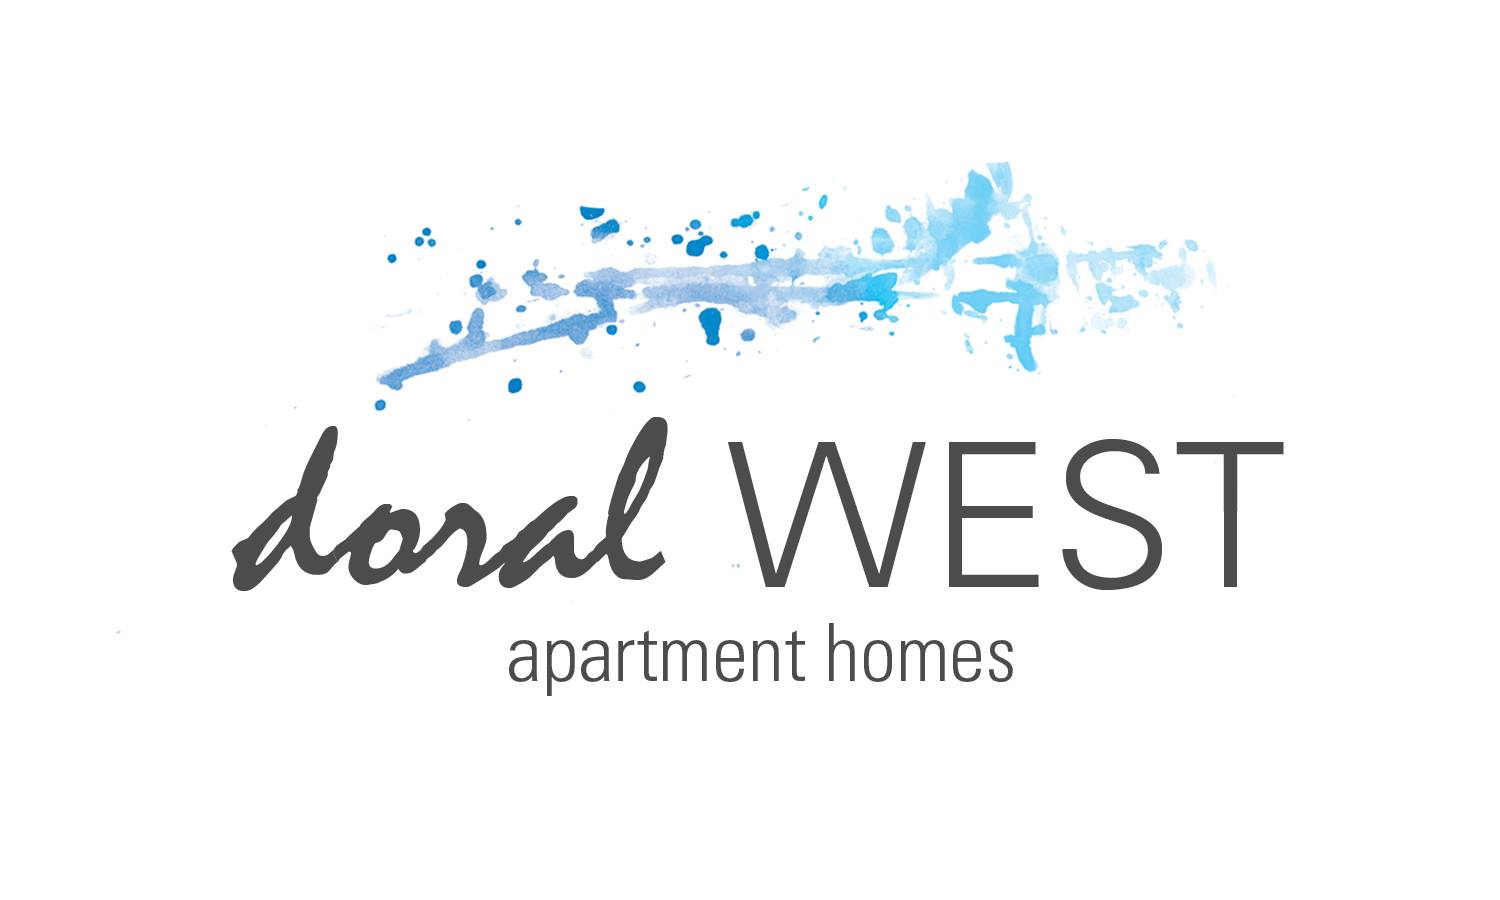 Doral West Apartments Member of Doral Chamber of Commerce